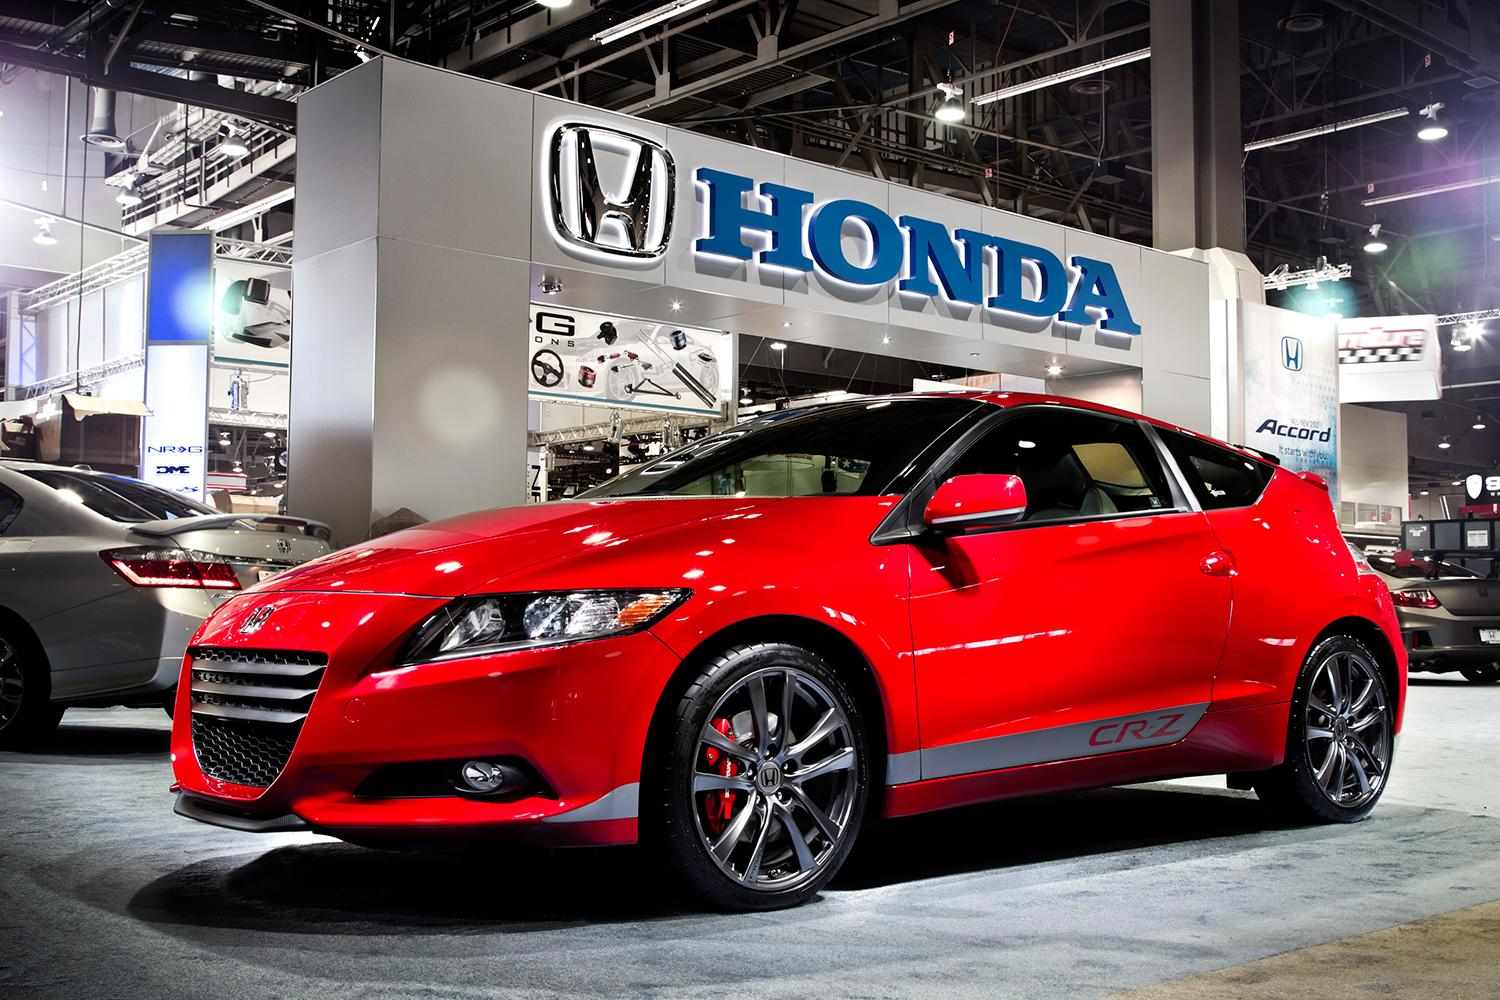 honda s cr z might lose the hybrid get a turbo engine and a full sport makeover for in 2018. Black Bedroom Furniture Sets. Home Design Ideas